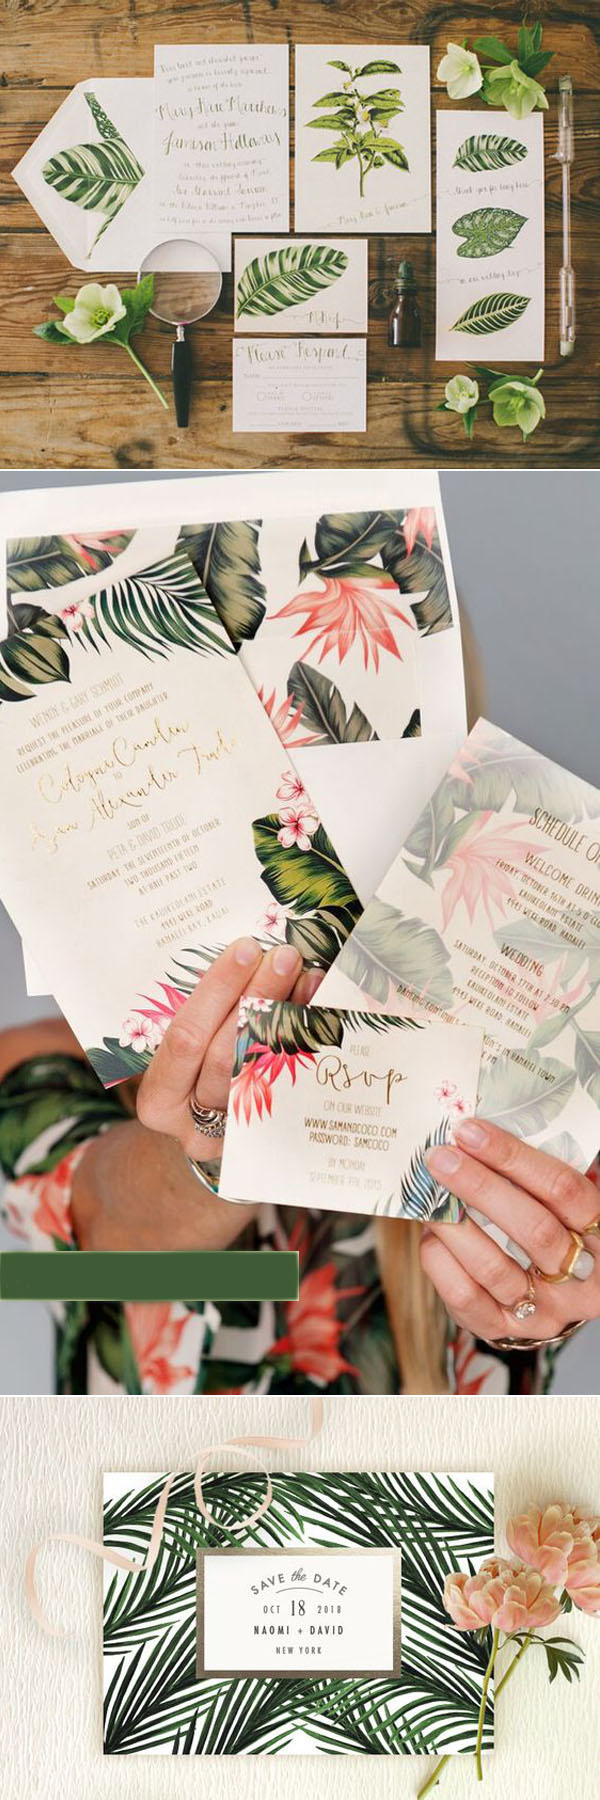 wedding_trends_2017_wedding_invitations_tropical_palm_leaves